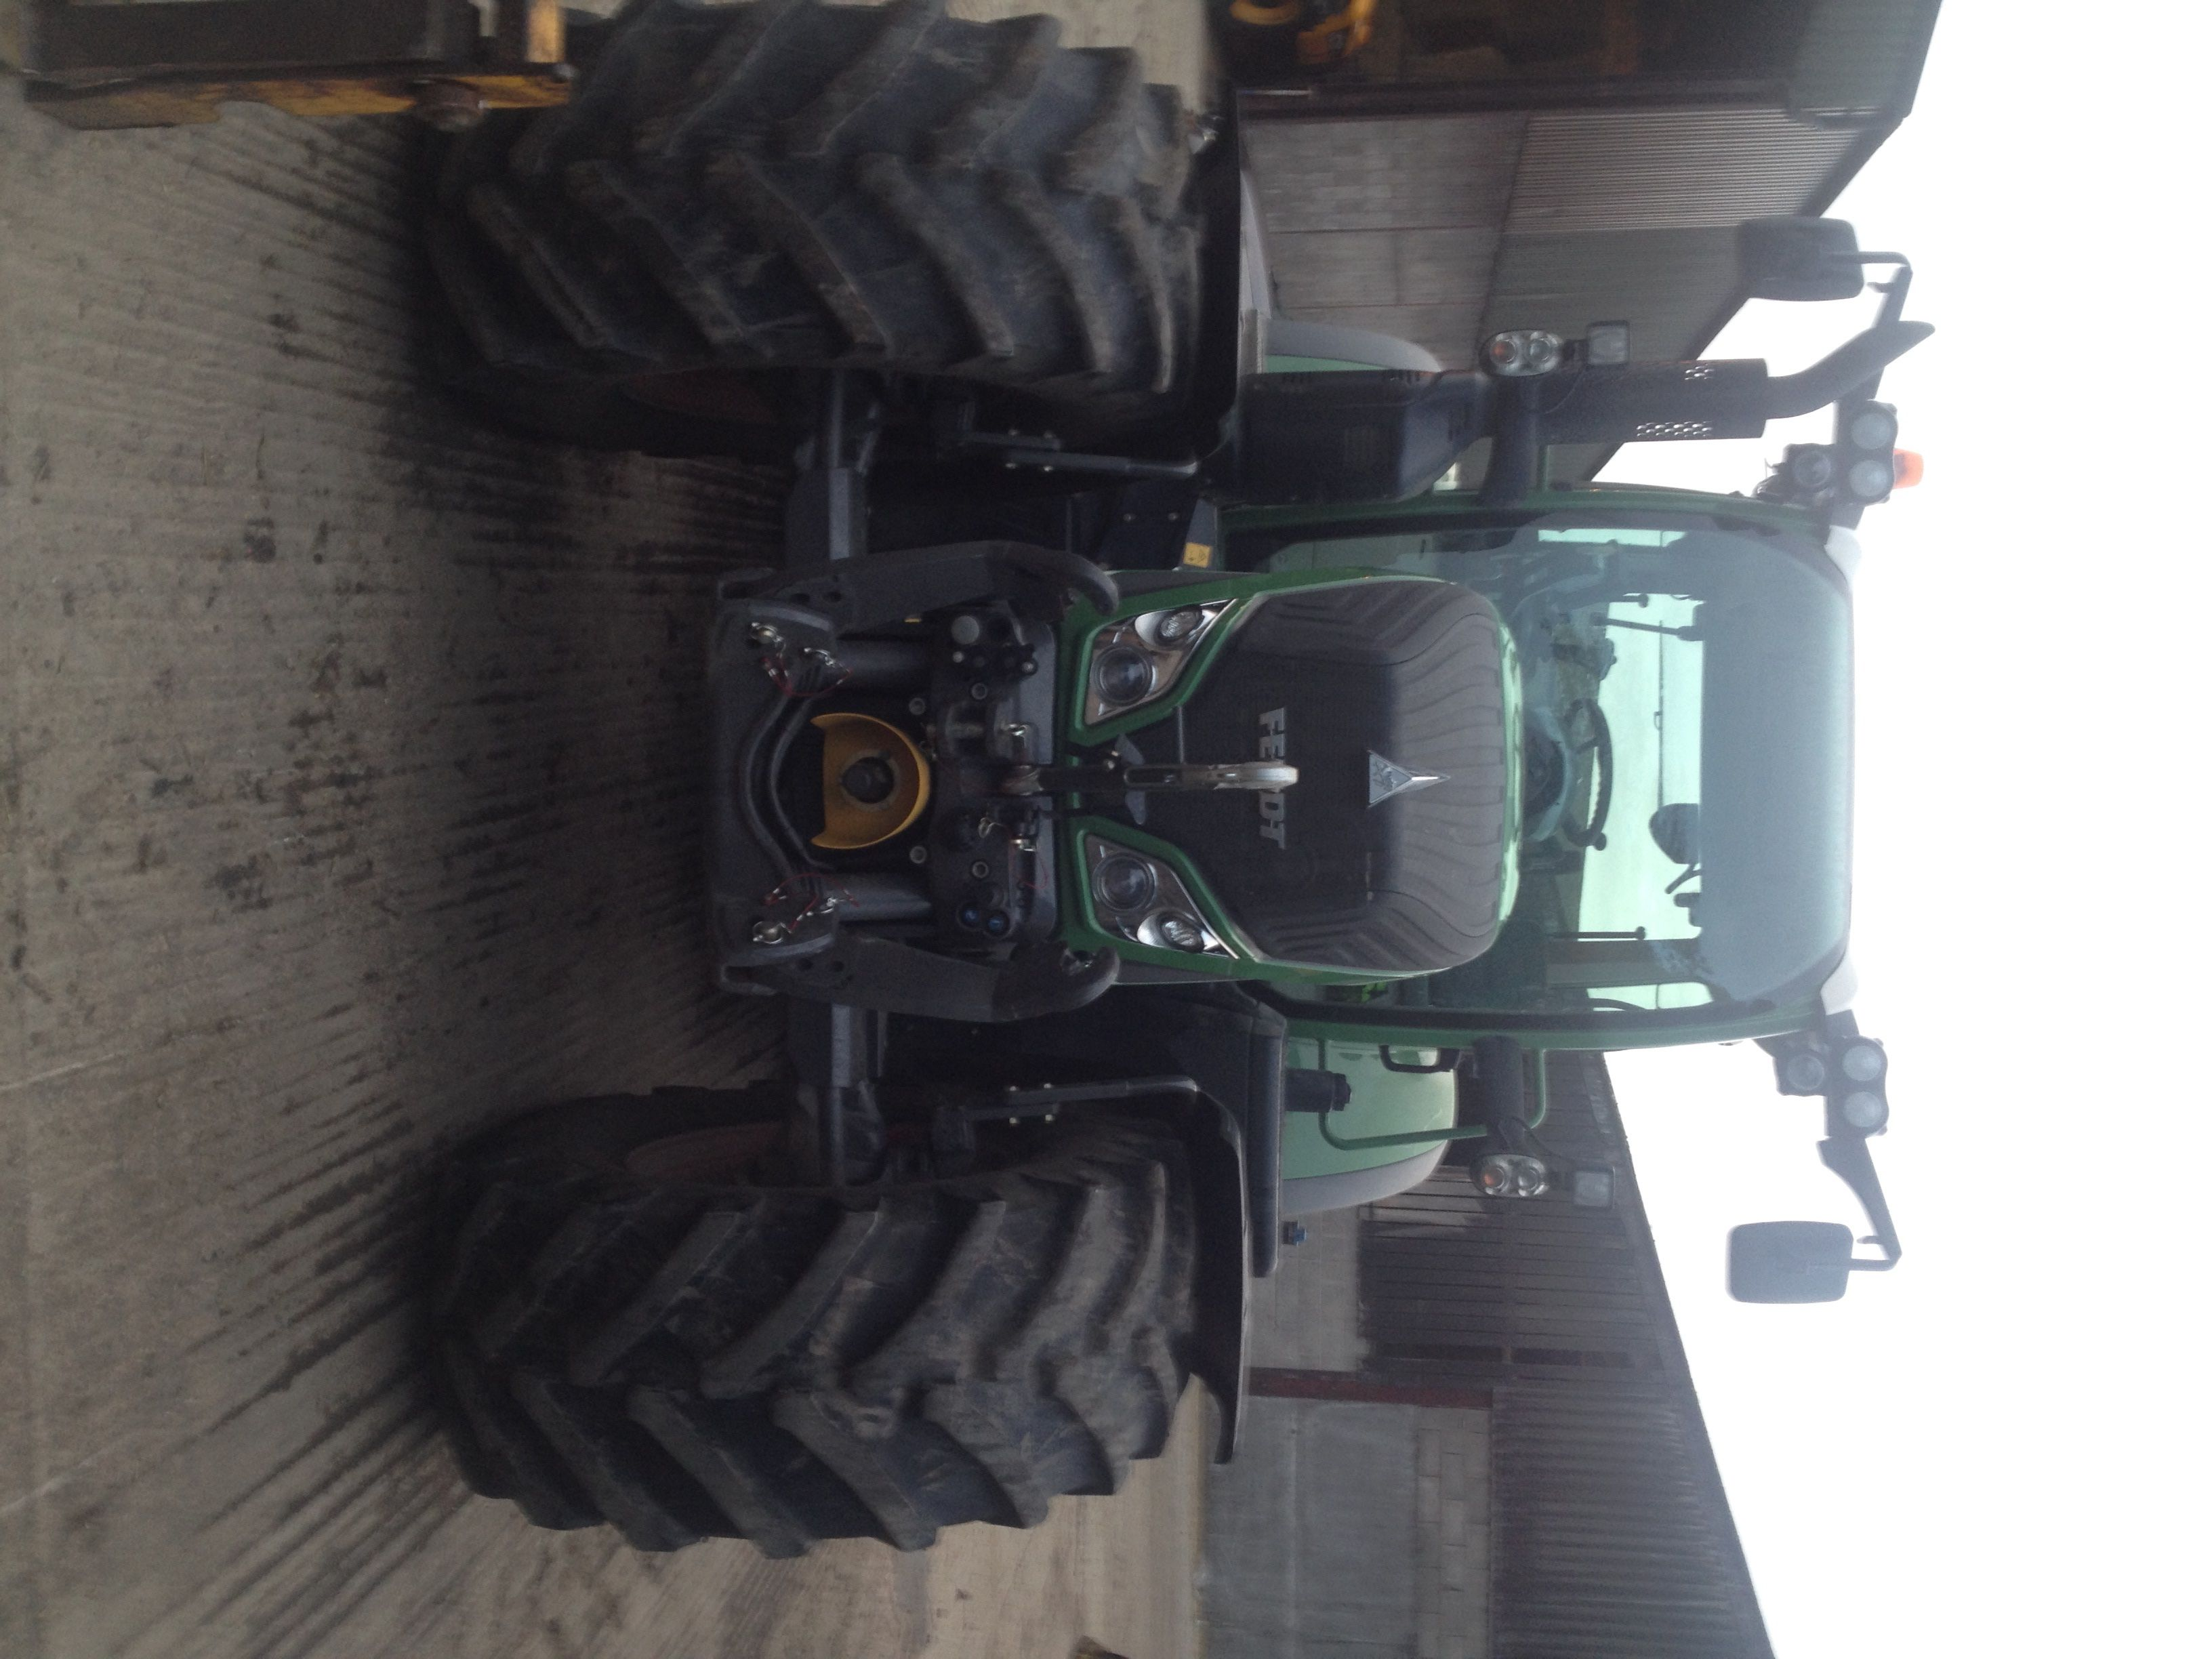 Early Friday morning this Fendt tractor was fitted with a Tunit Adavantage II at the customers property.  BHP from 200 - 237   Torque from 662 lbs/ft – 804 lbs/ft  Fitted in less than an hour  Message us for a Tunit dealer near you  01257 274100 info@tunit.com www.tunit.com for more details